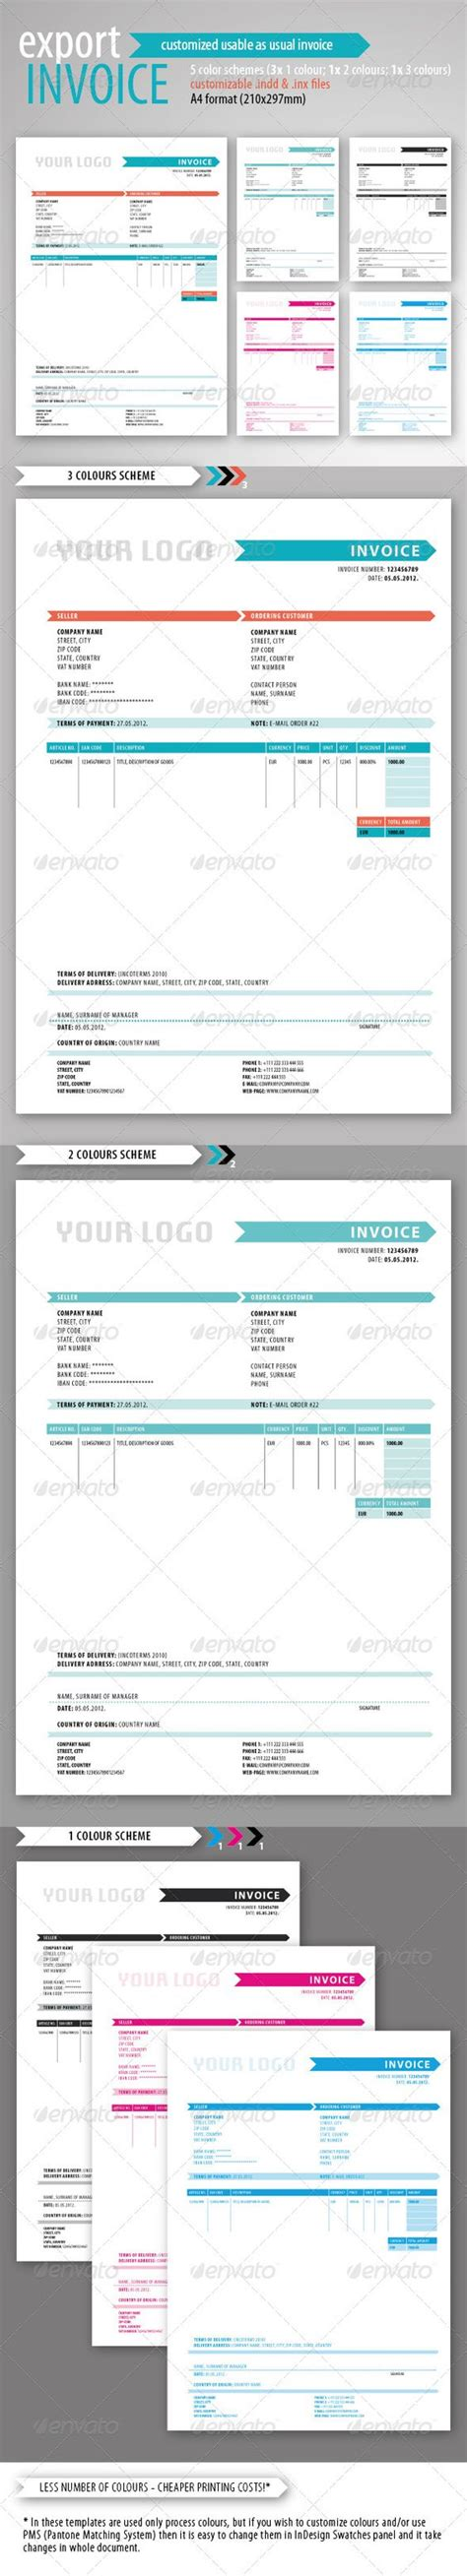 export invoice template delivery invoice template green invoice template and